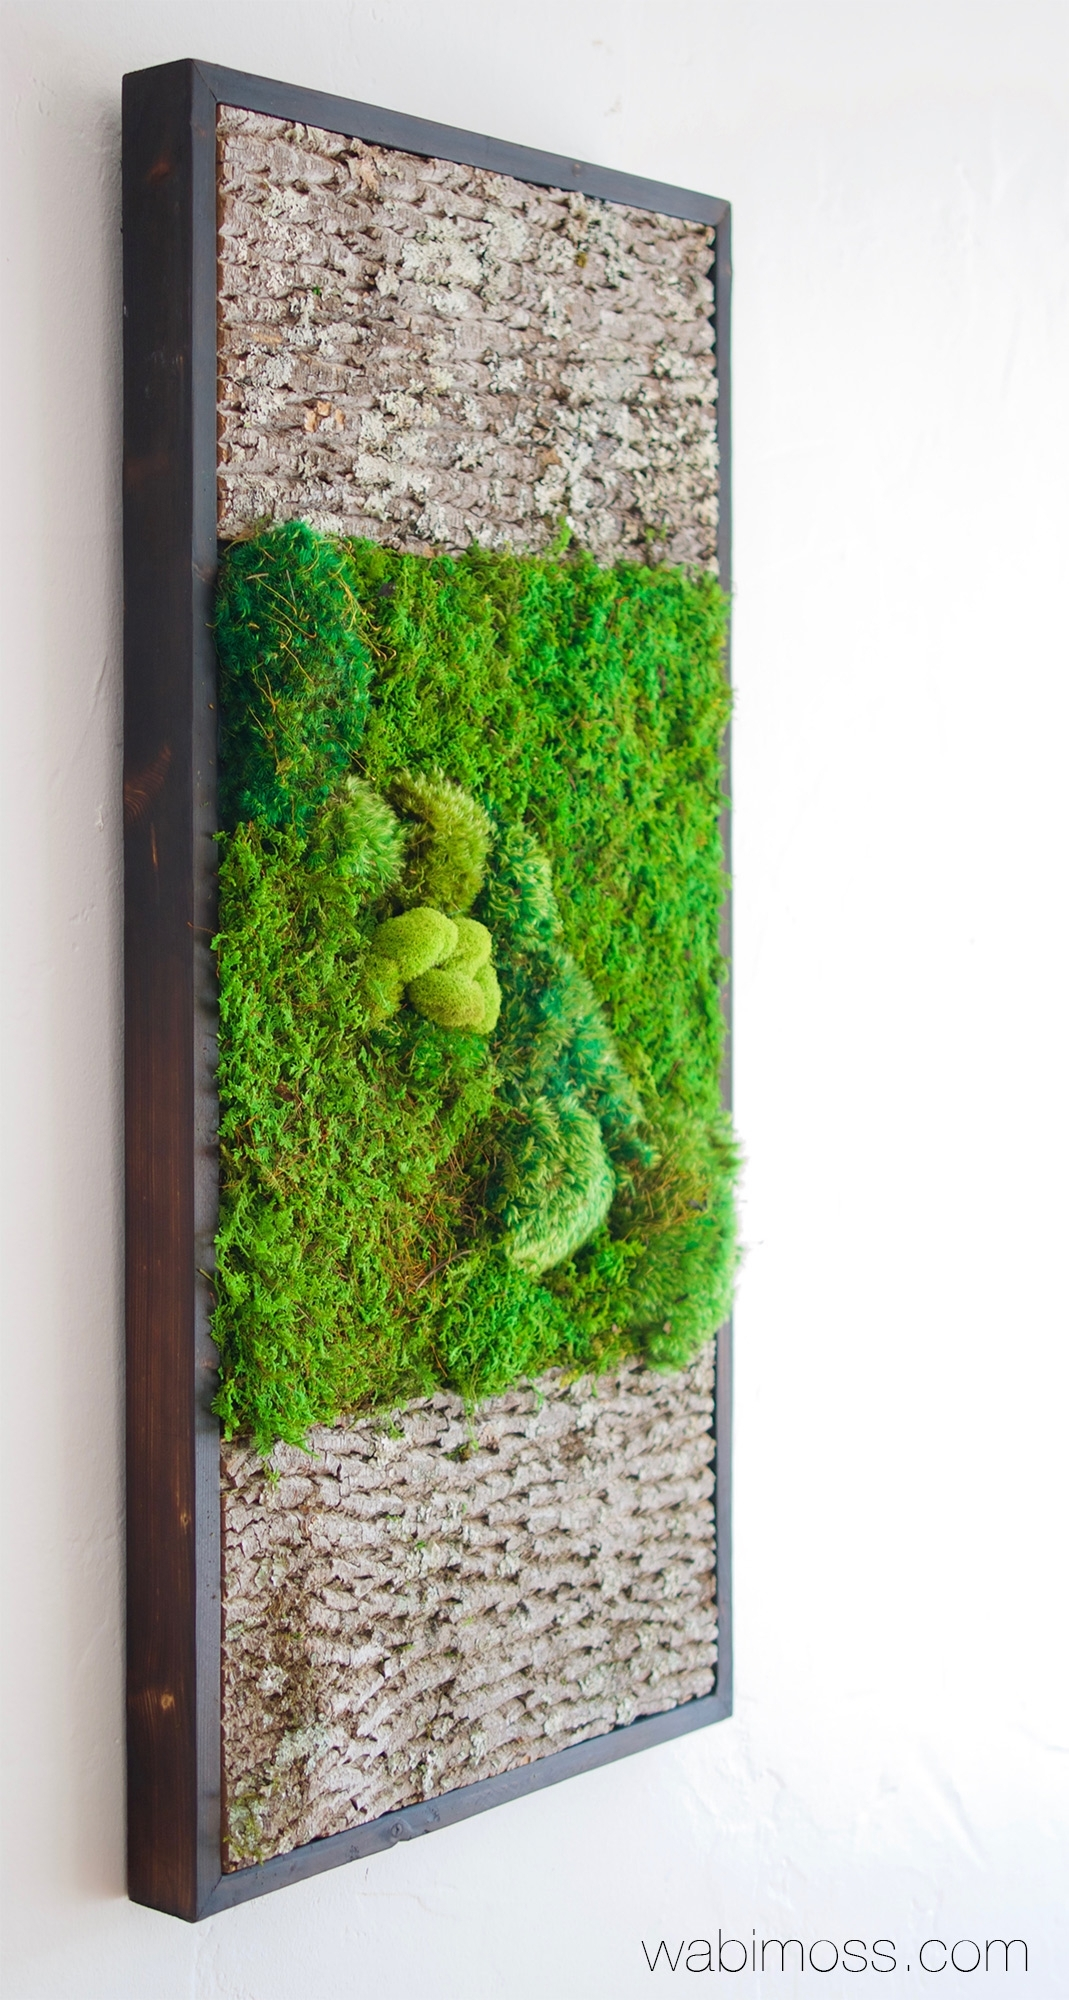 Bark And Moss Wall Art 36x18 – Wabimoss Intended For 2018 Moss Wall Art (View 13 of 20)